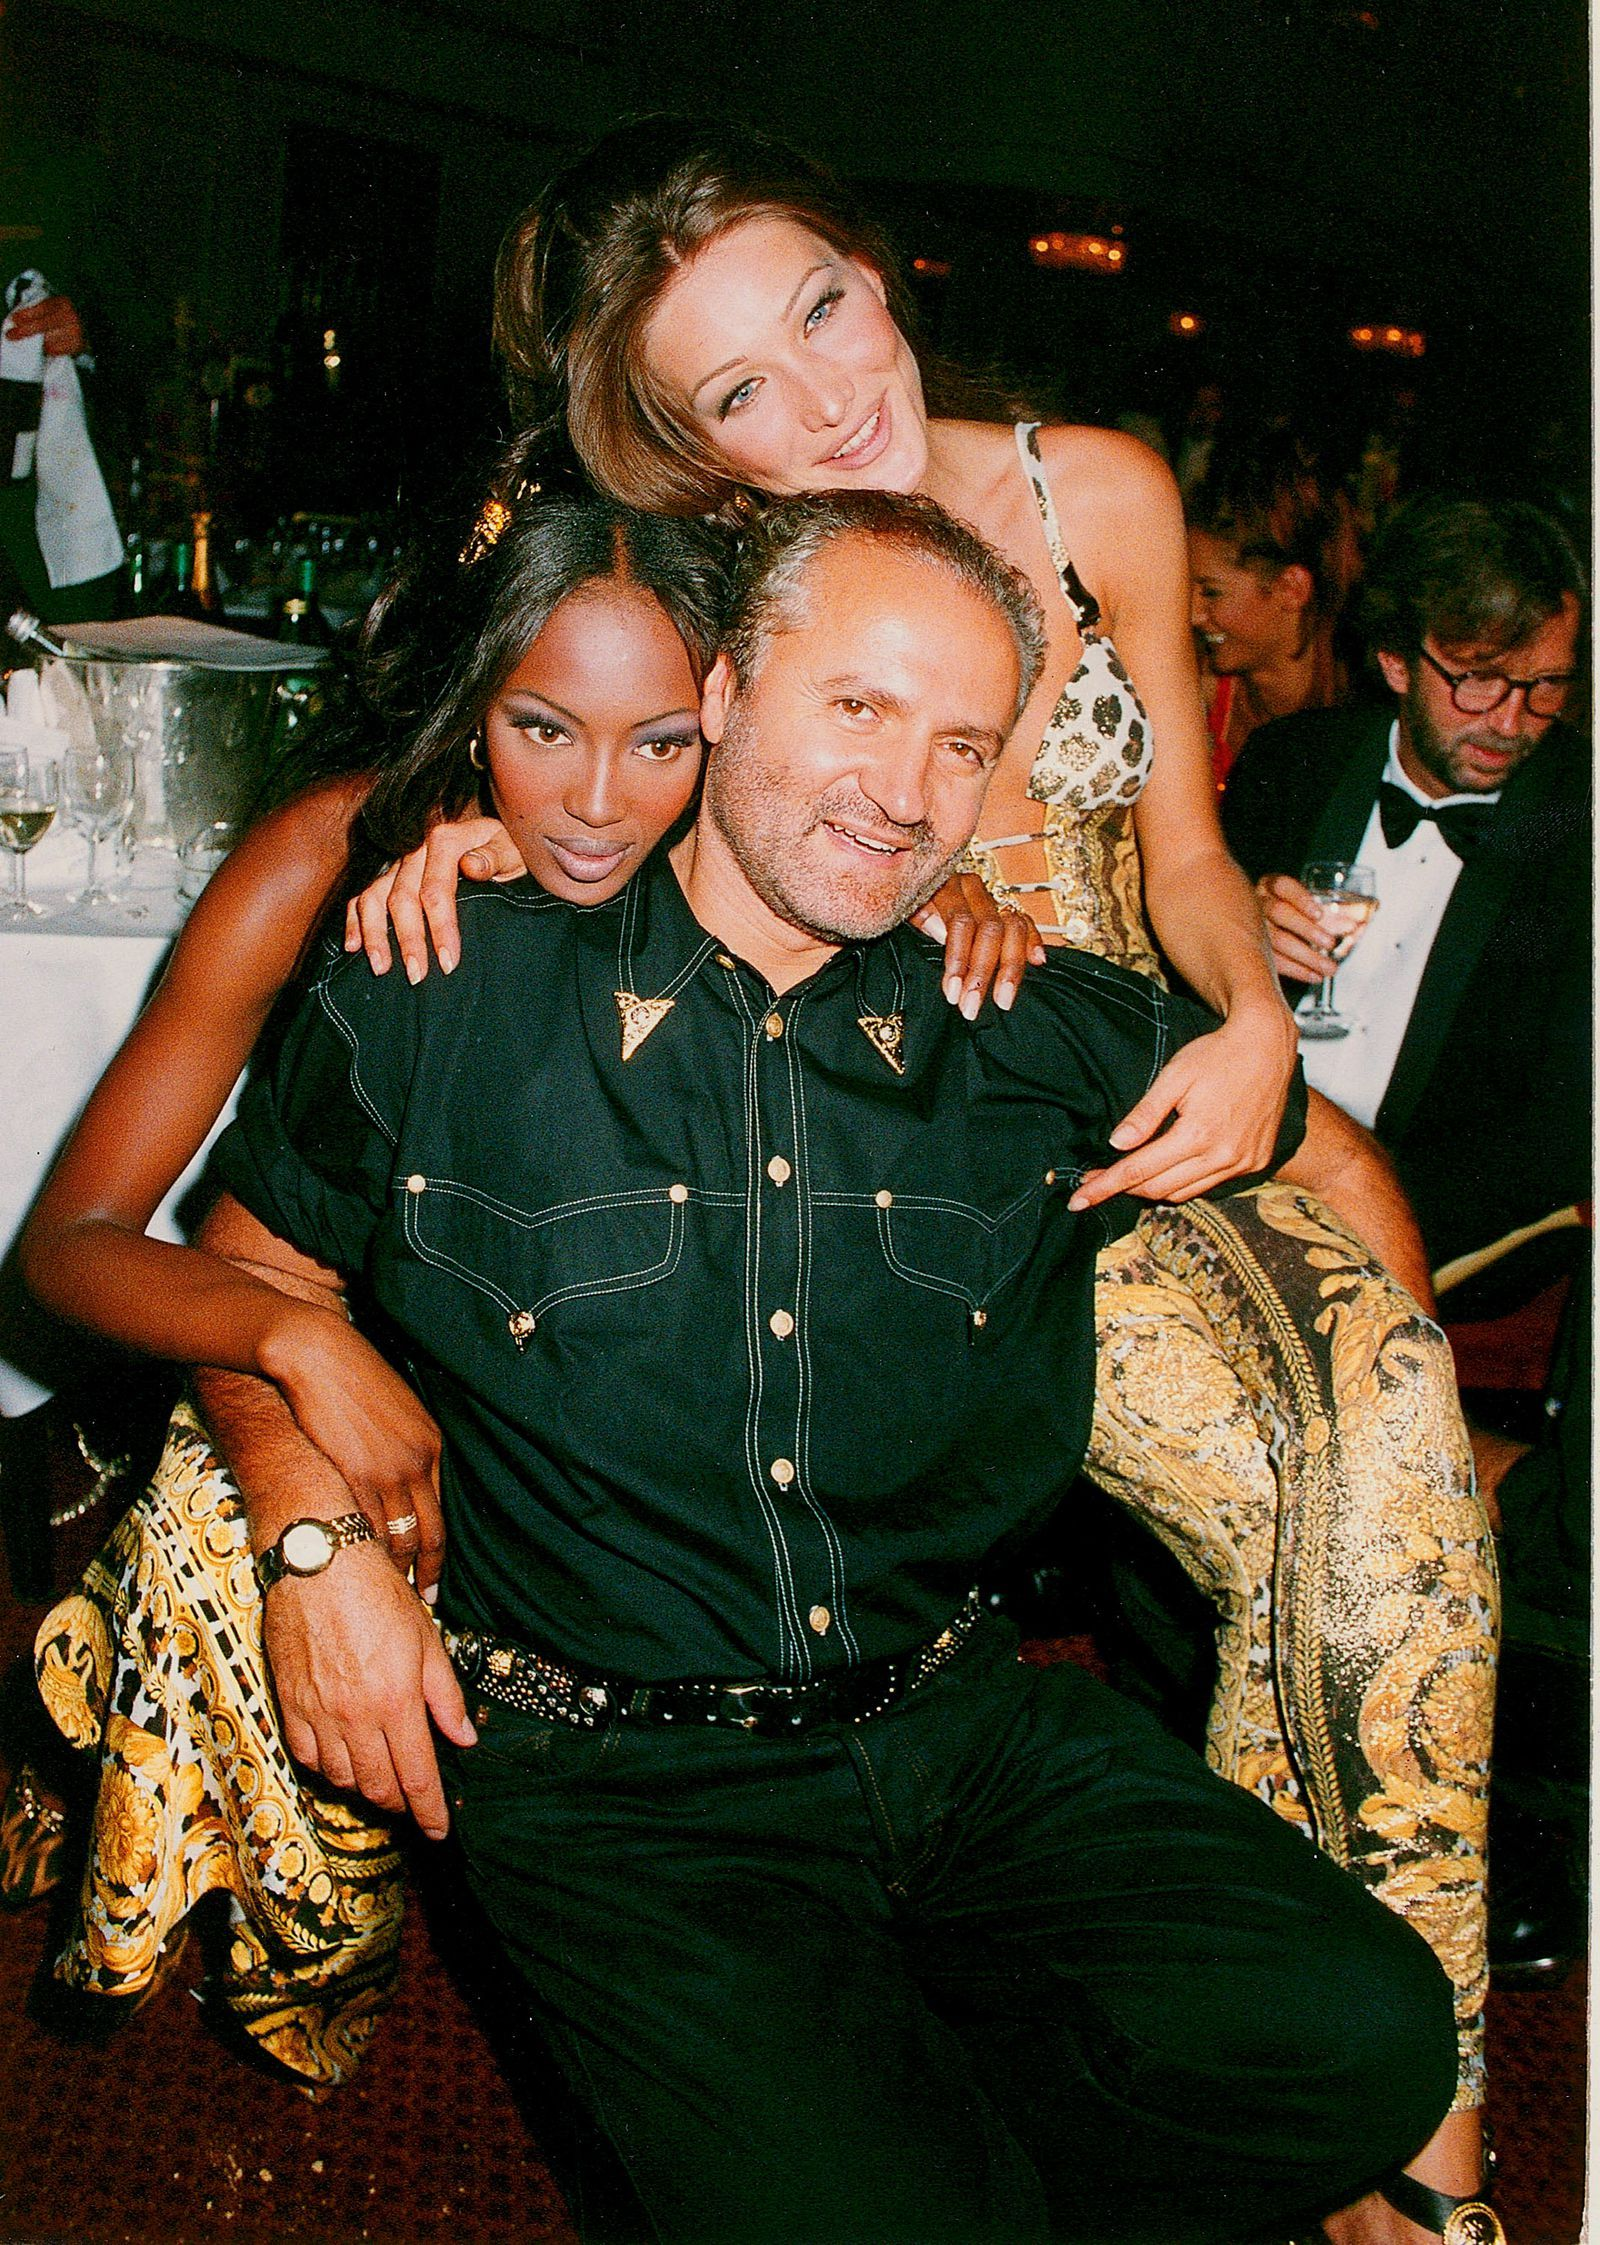 A Tribute To Gianni Versace S Most Iconic Designs Gianni Versace